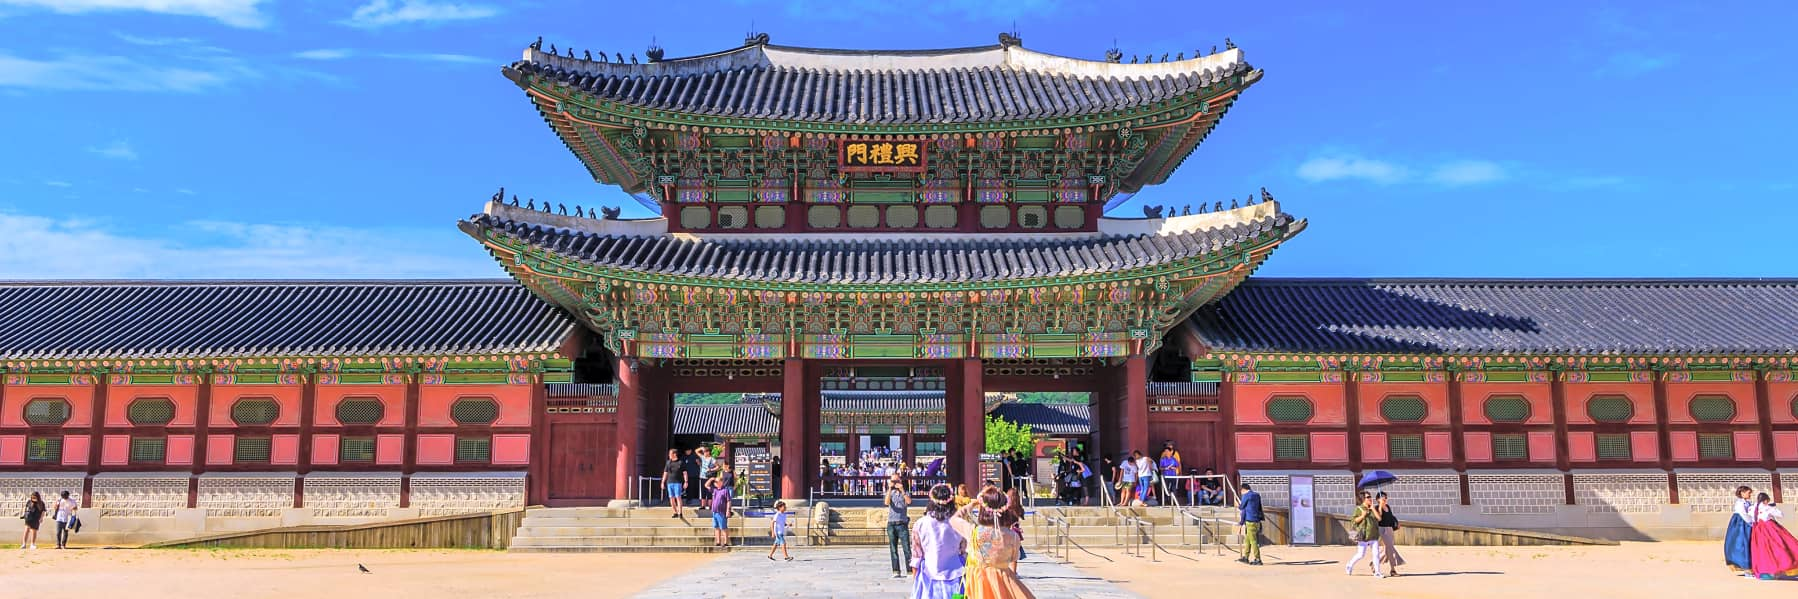 Seoul City Morning Tour: Gyeongbokgung Palace & More – Half Day gallery